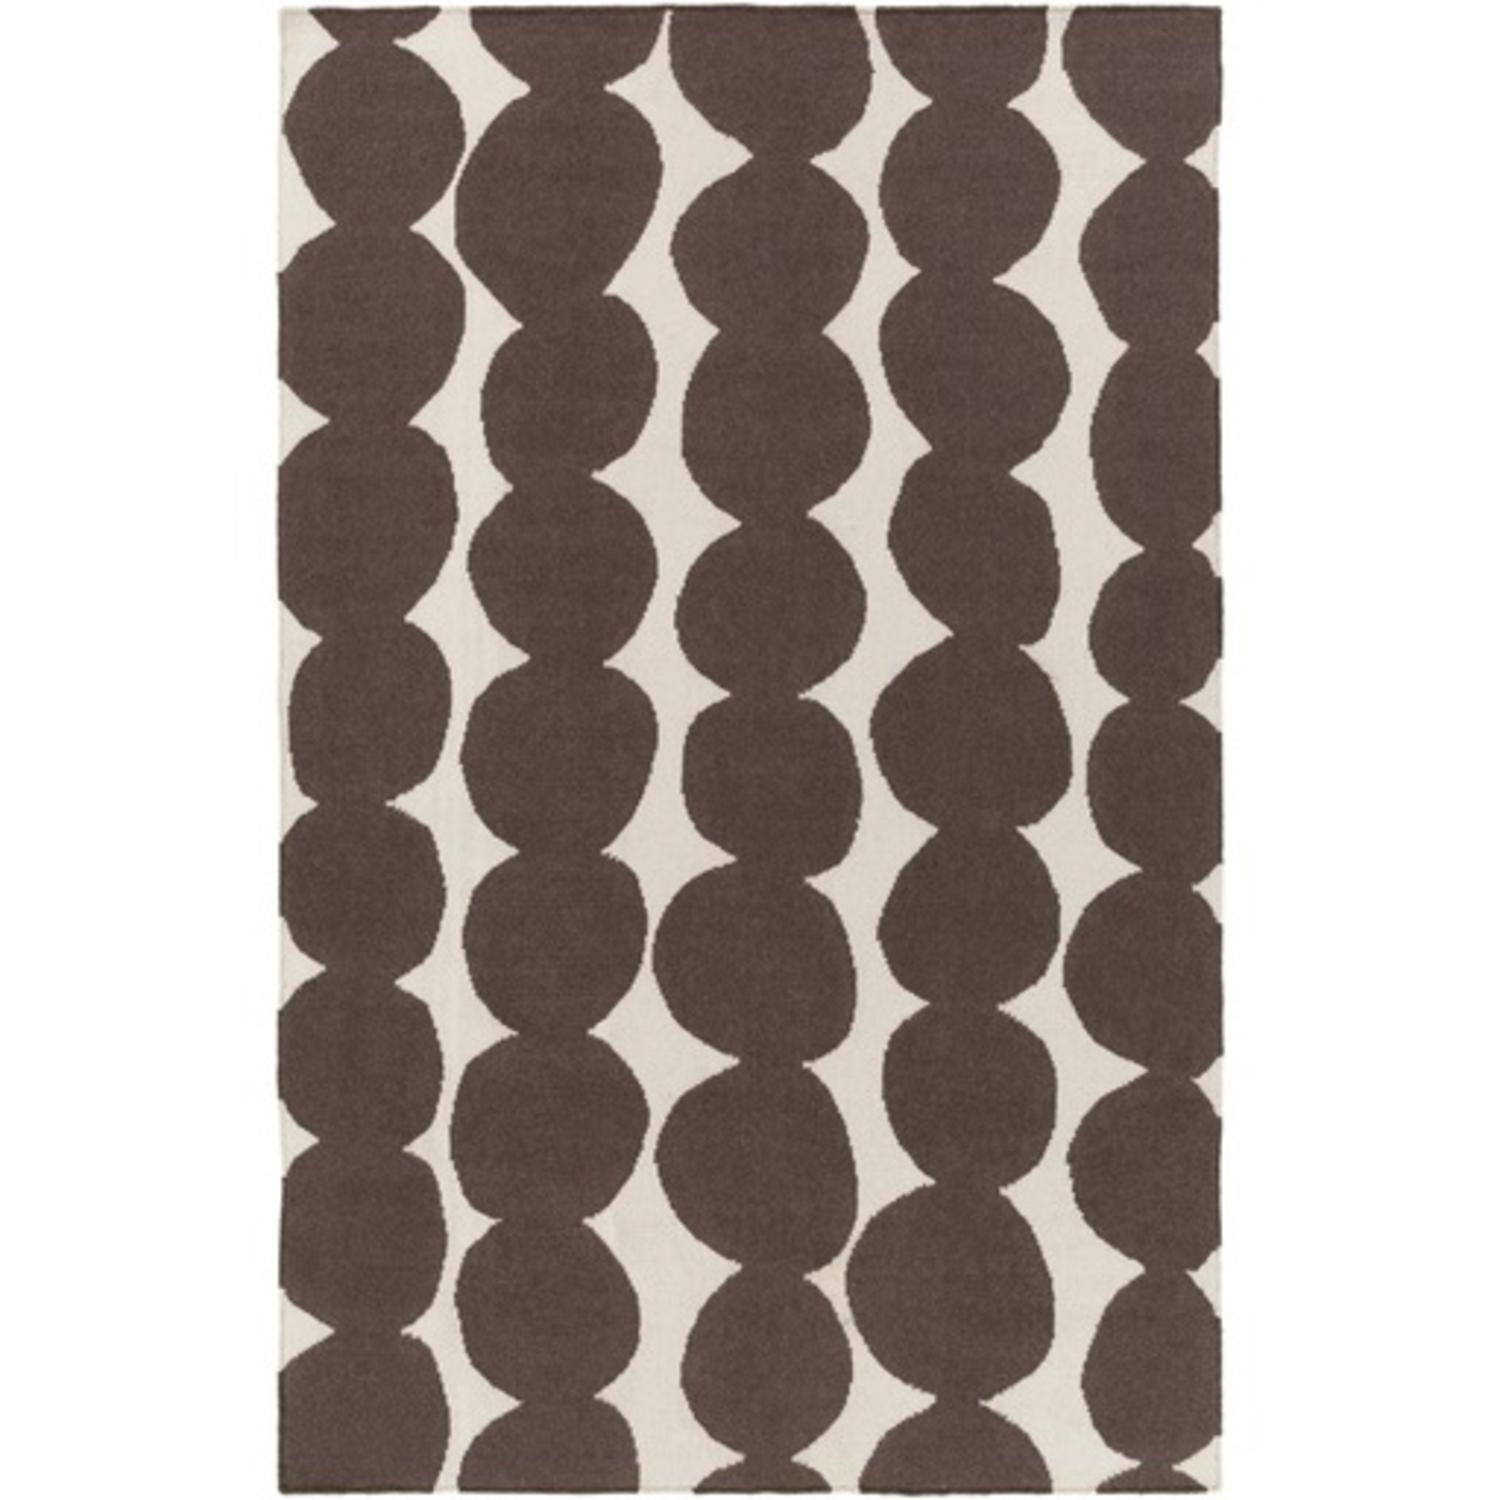 3.25' x 5.25' Pebble Stone Taupe Brown and Dove Gray Hand...